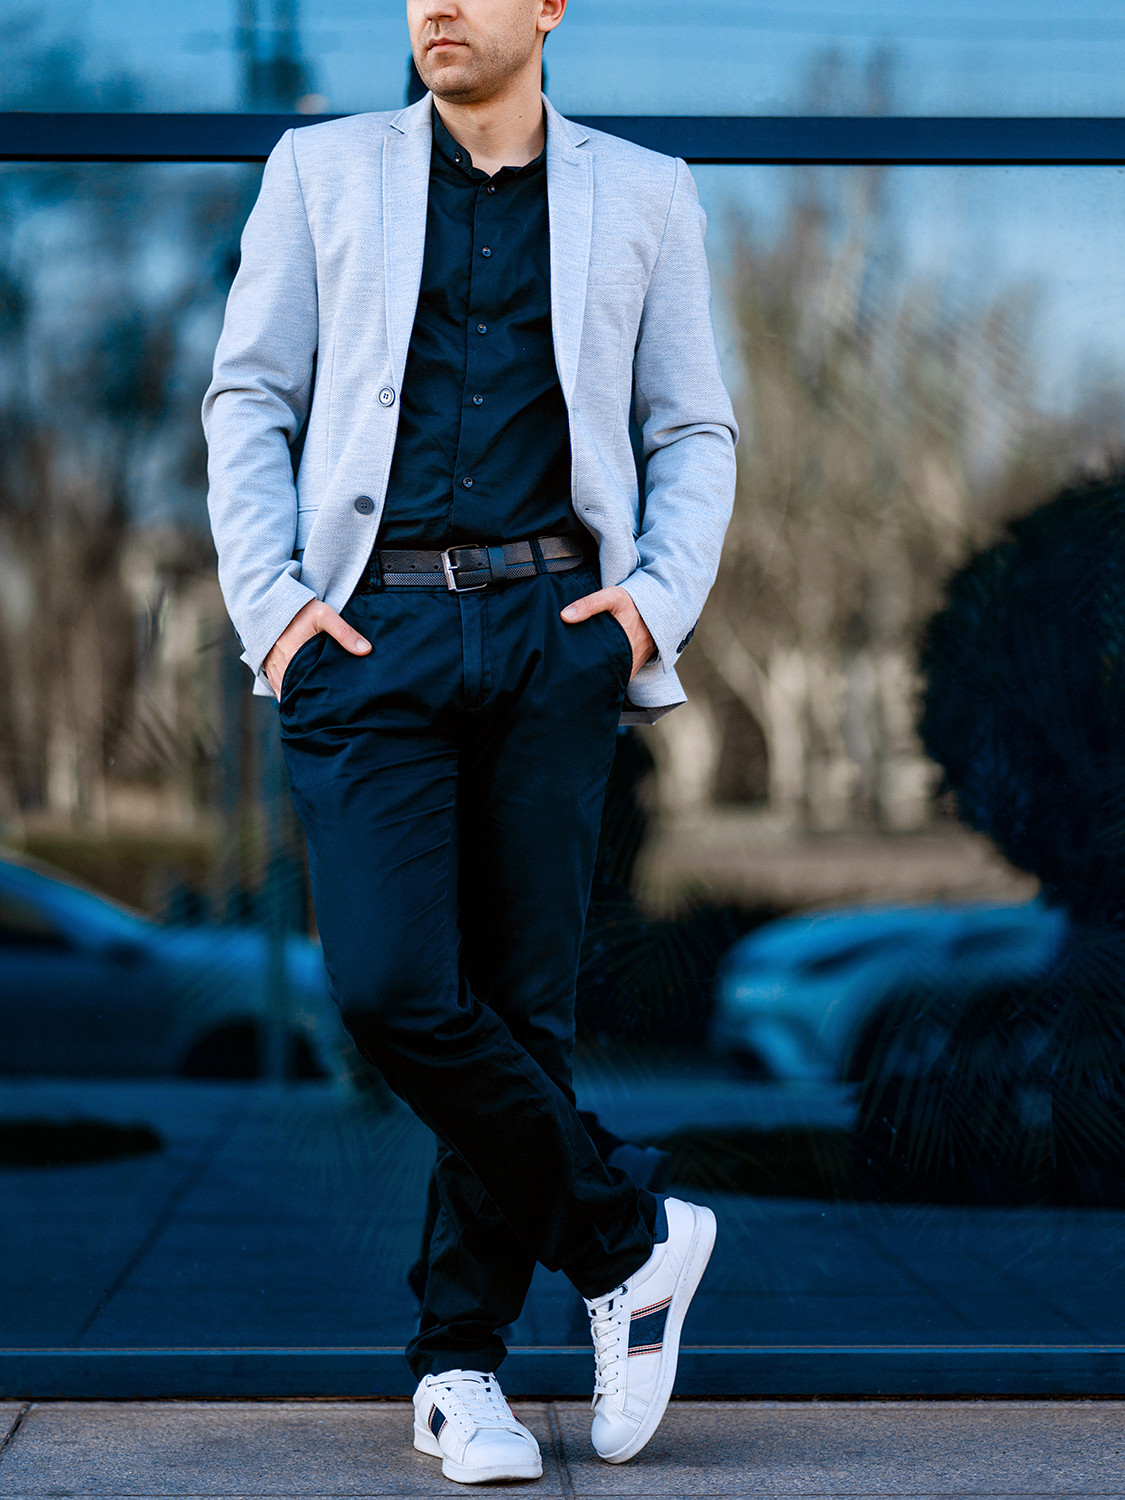 Men's outfit idea for 2021 with blue plain blazer, navy plain casual shirt, navy chinos, white trainers / sneakers. Suitable for spring and autumn.